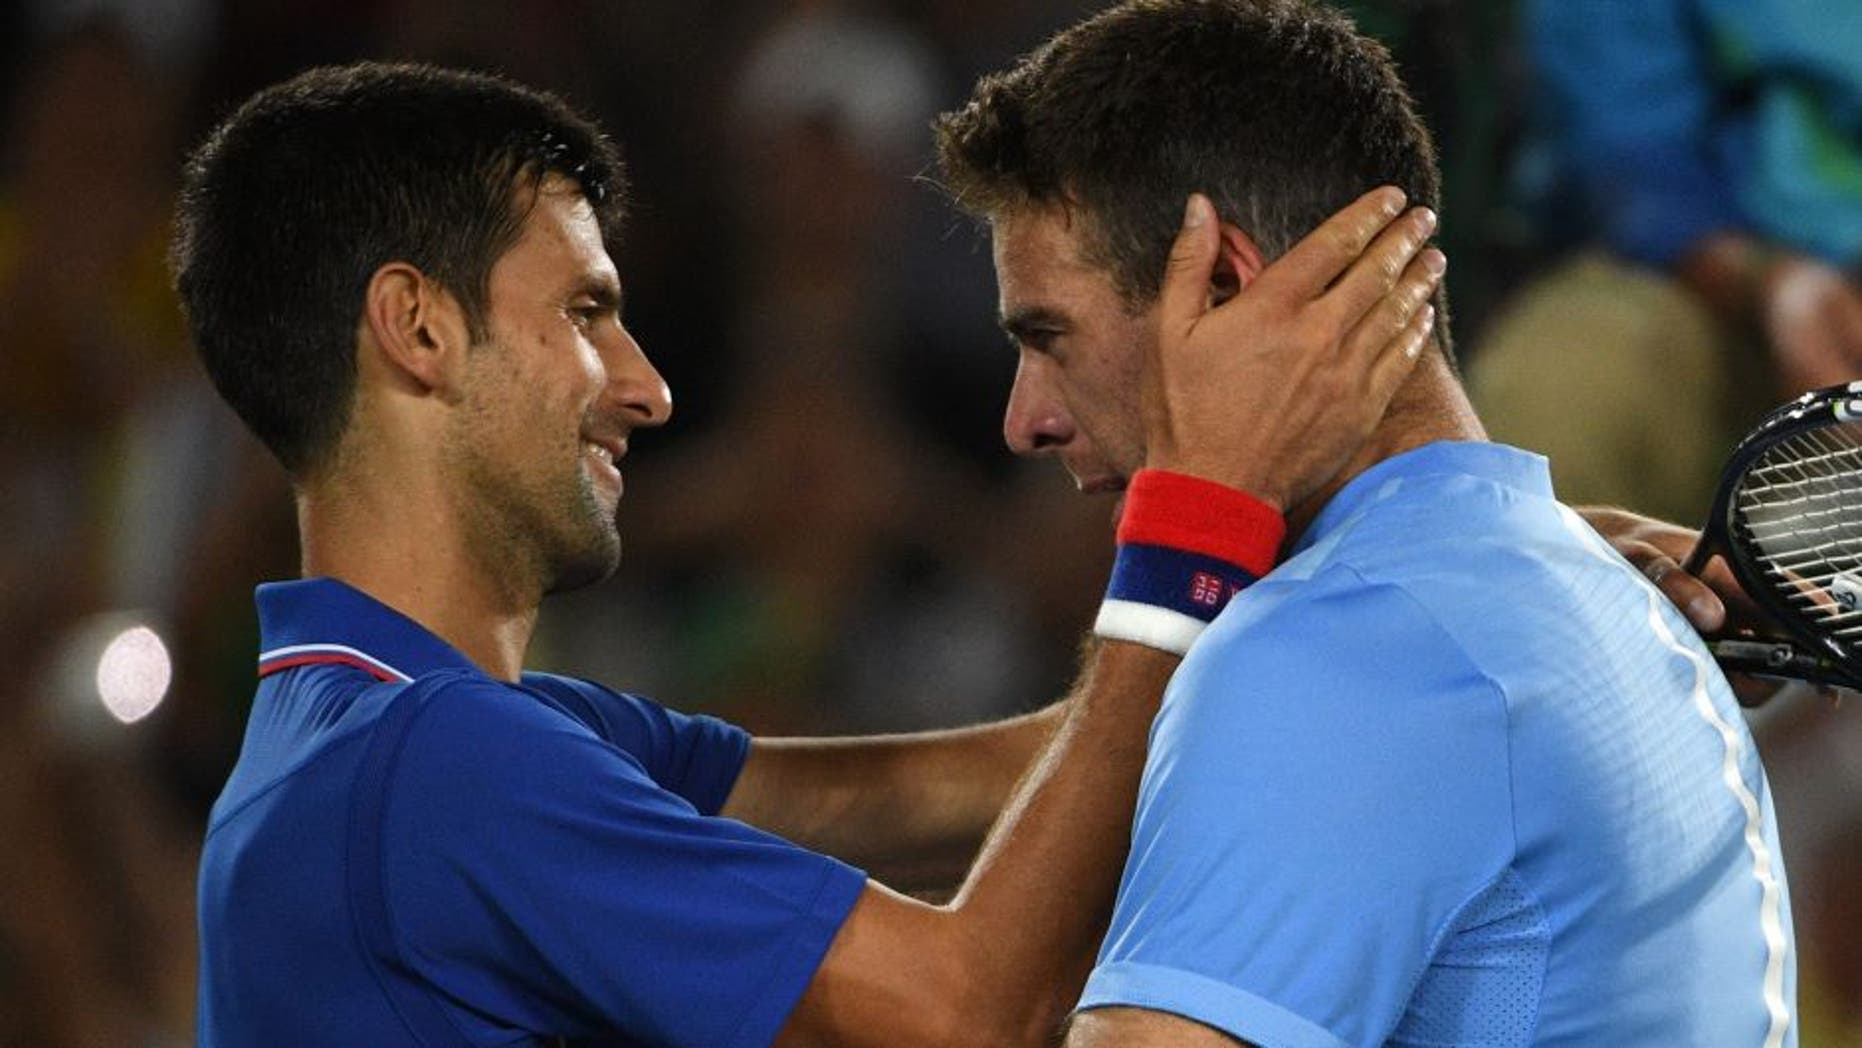 Argentina's Juan Martin del Potro (R) speaks to Serbia's Novak Djokovic after winning their men's first round singles tennis match at the Olympic Tennis Centre of the Rio 2016 Olympic Games in Rio de Janeiro on August 7, 2016. / AFP / Roberto SCHMIDT (Photo credit should read ROBERTO SCHMIDT/AFP/Getty Images)